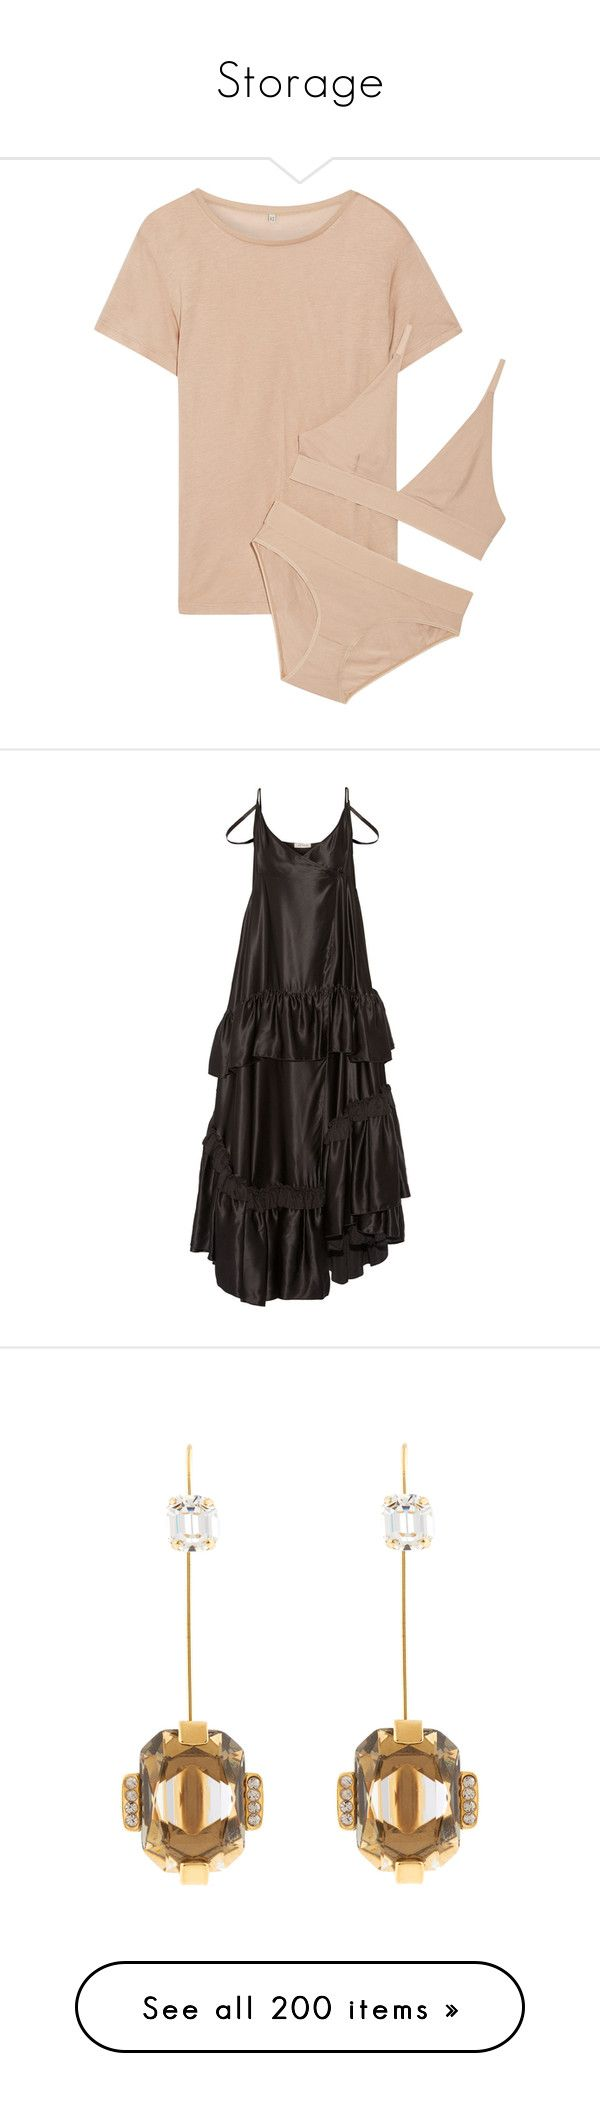 """""""Storage"""" by amberelb ❤ liked on Polyvore featuring intimates, lingerie, dresses, black, silk satin dress, loose fit dress, loose dresses, maxi length dresses, loose fitting maxi dresses and jewelry"""